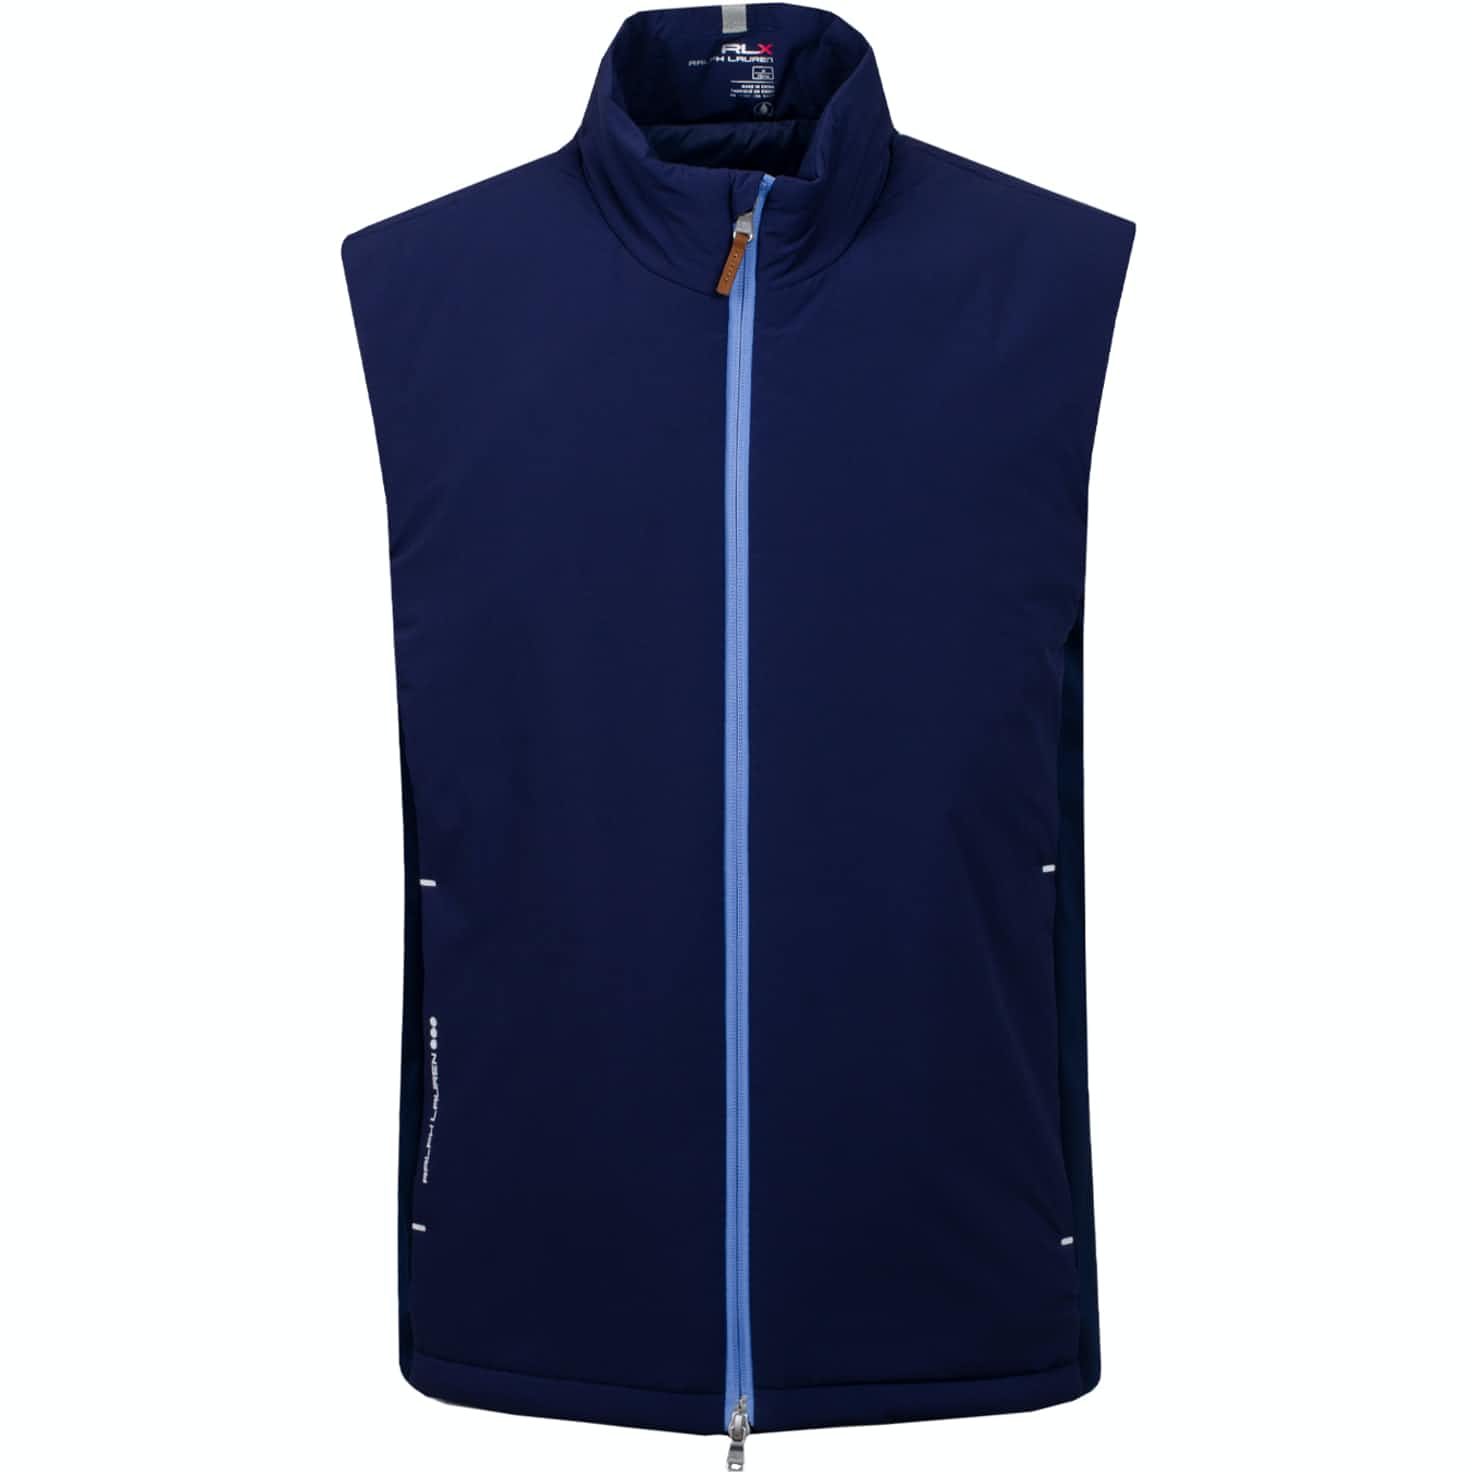 Ascent Stretch Nylon Vest French Navy - AW19